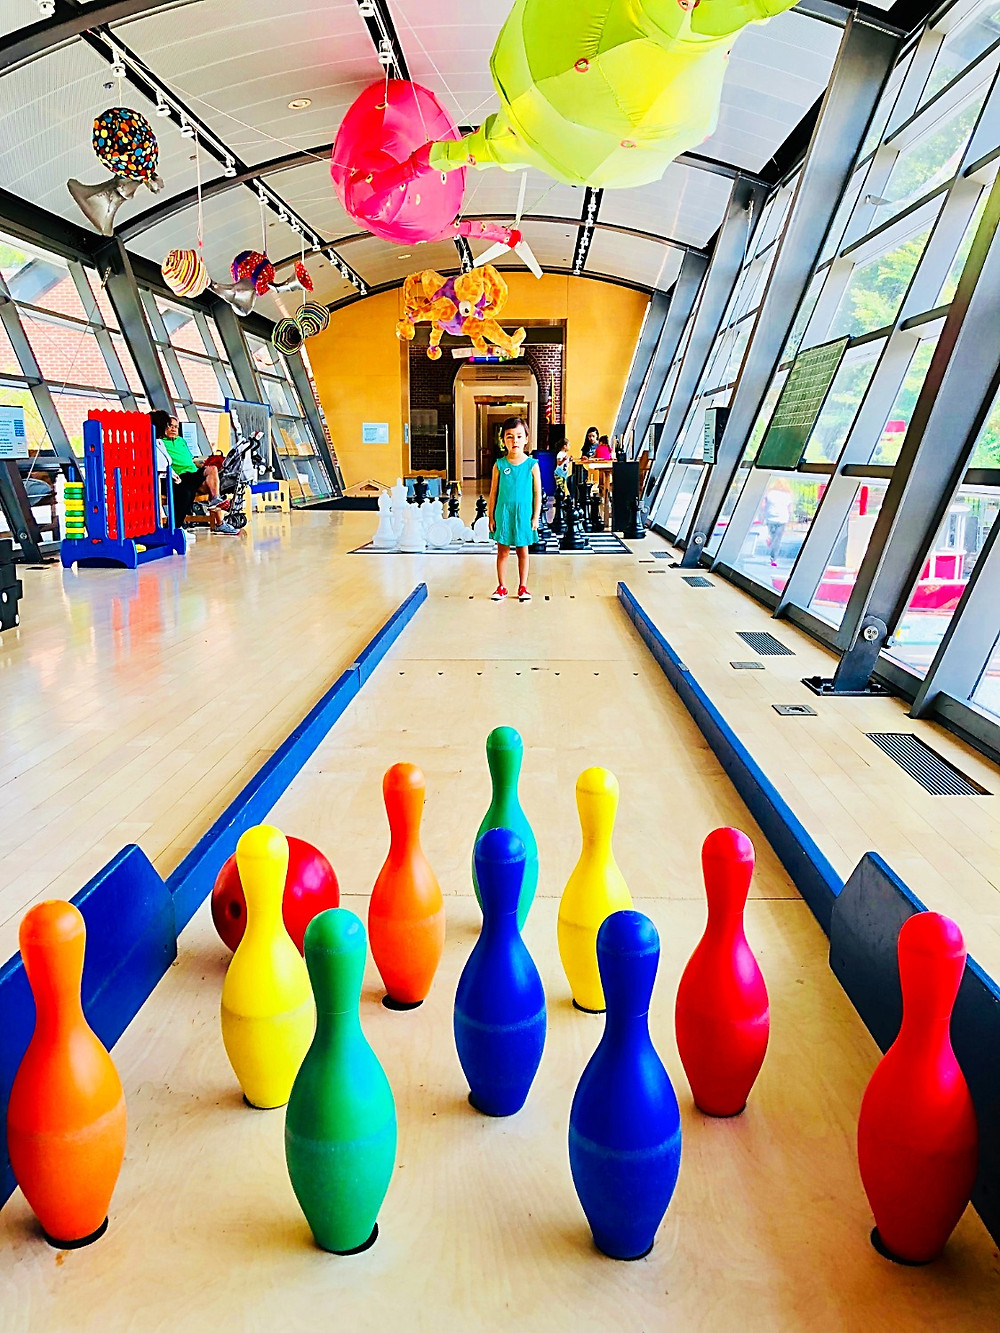 Staten Island Children's Museum, Snug Harbor with kids, best children's museums in New York, Curious G and Me, Indoor fun guide for kids this winter